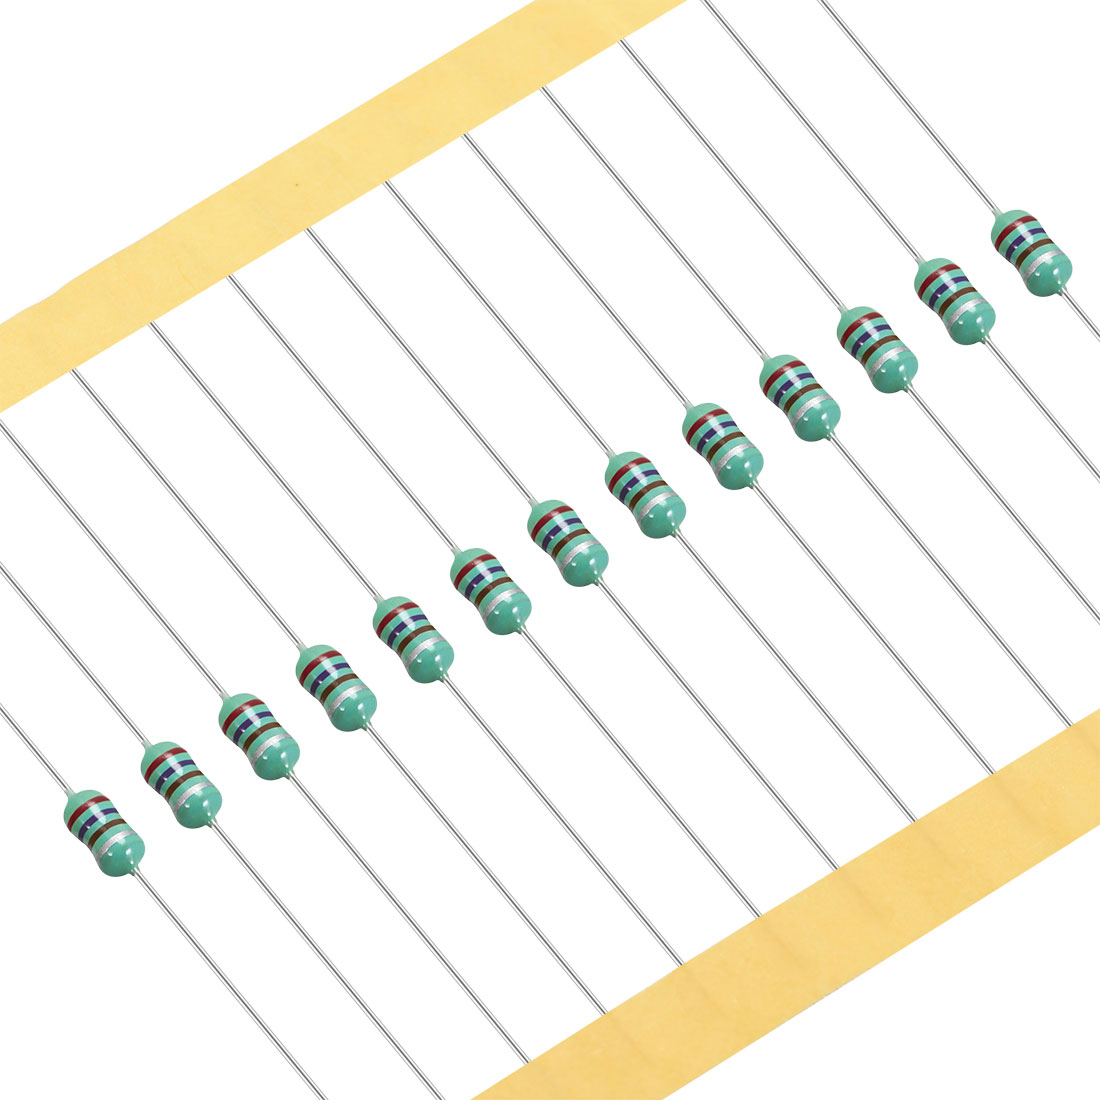 100Pcs 0307 Color Ring Inductor 270uH 0.5W Axial RF Choke Coil Inductor